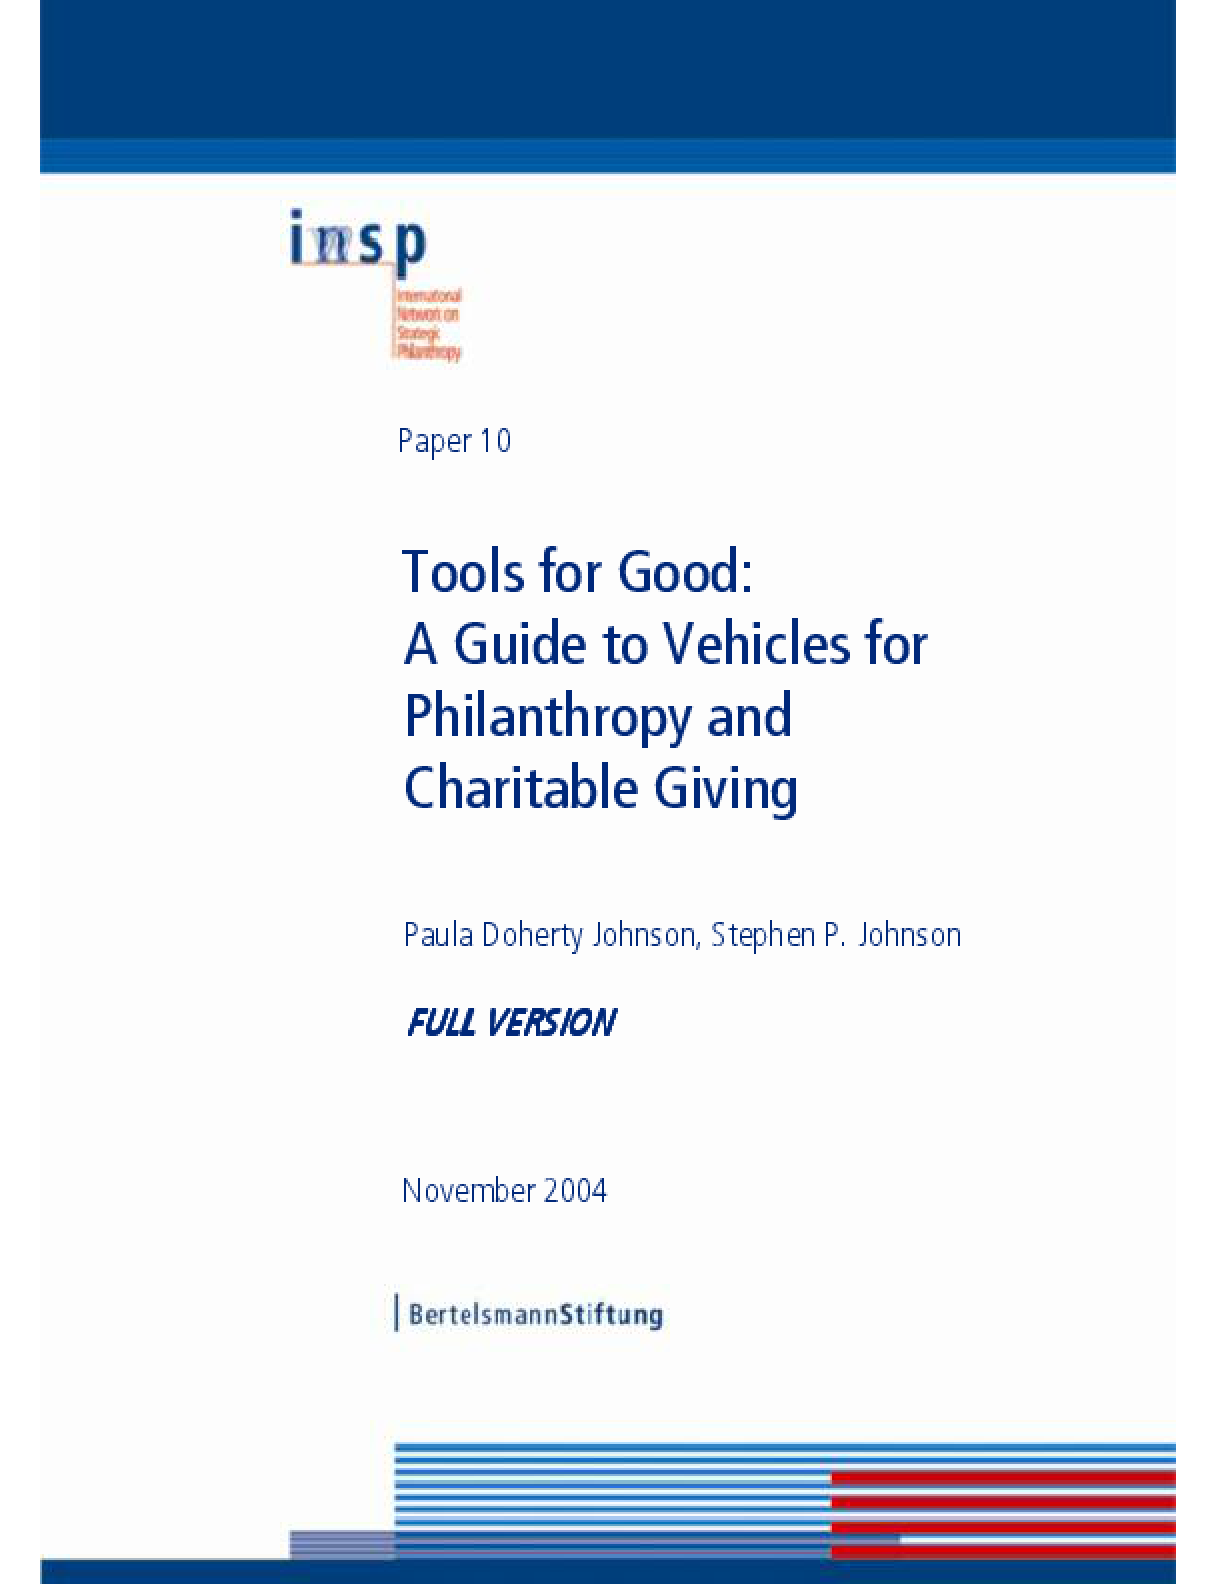 Tools for Good: A Guide to Vehicles for Philanthropy and Charitable Giving